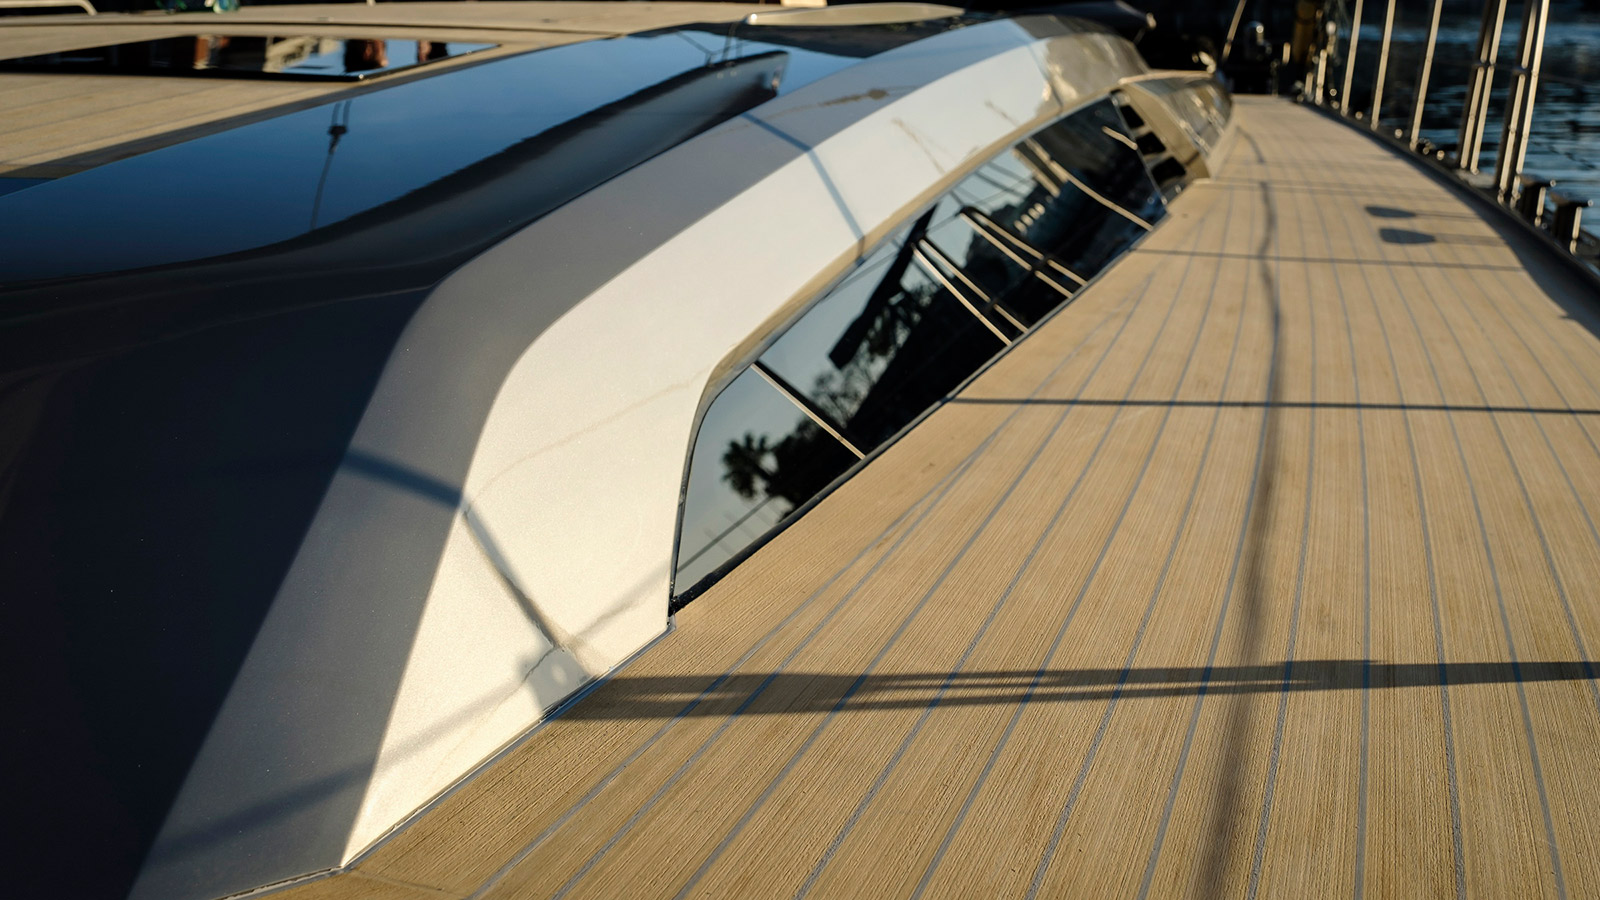 deck-view-of-the-southern-wind-sailing-yacht-sorceress